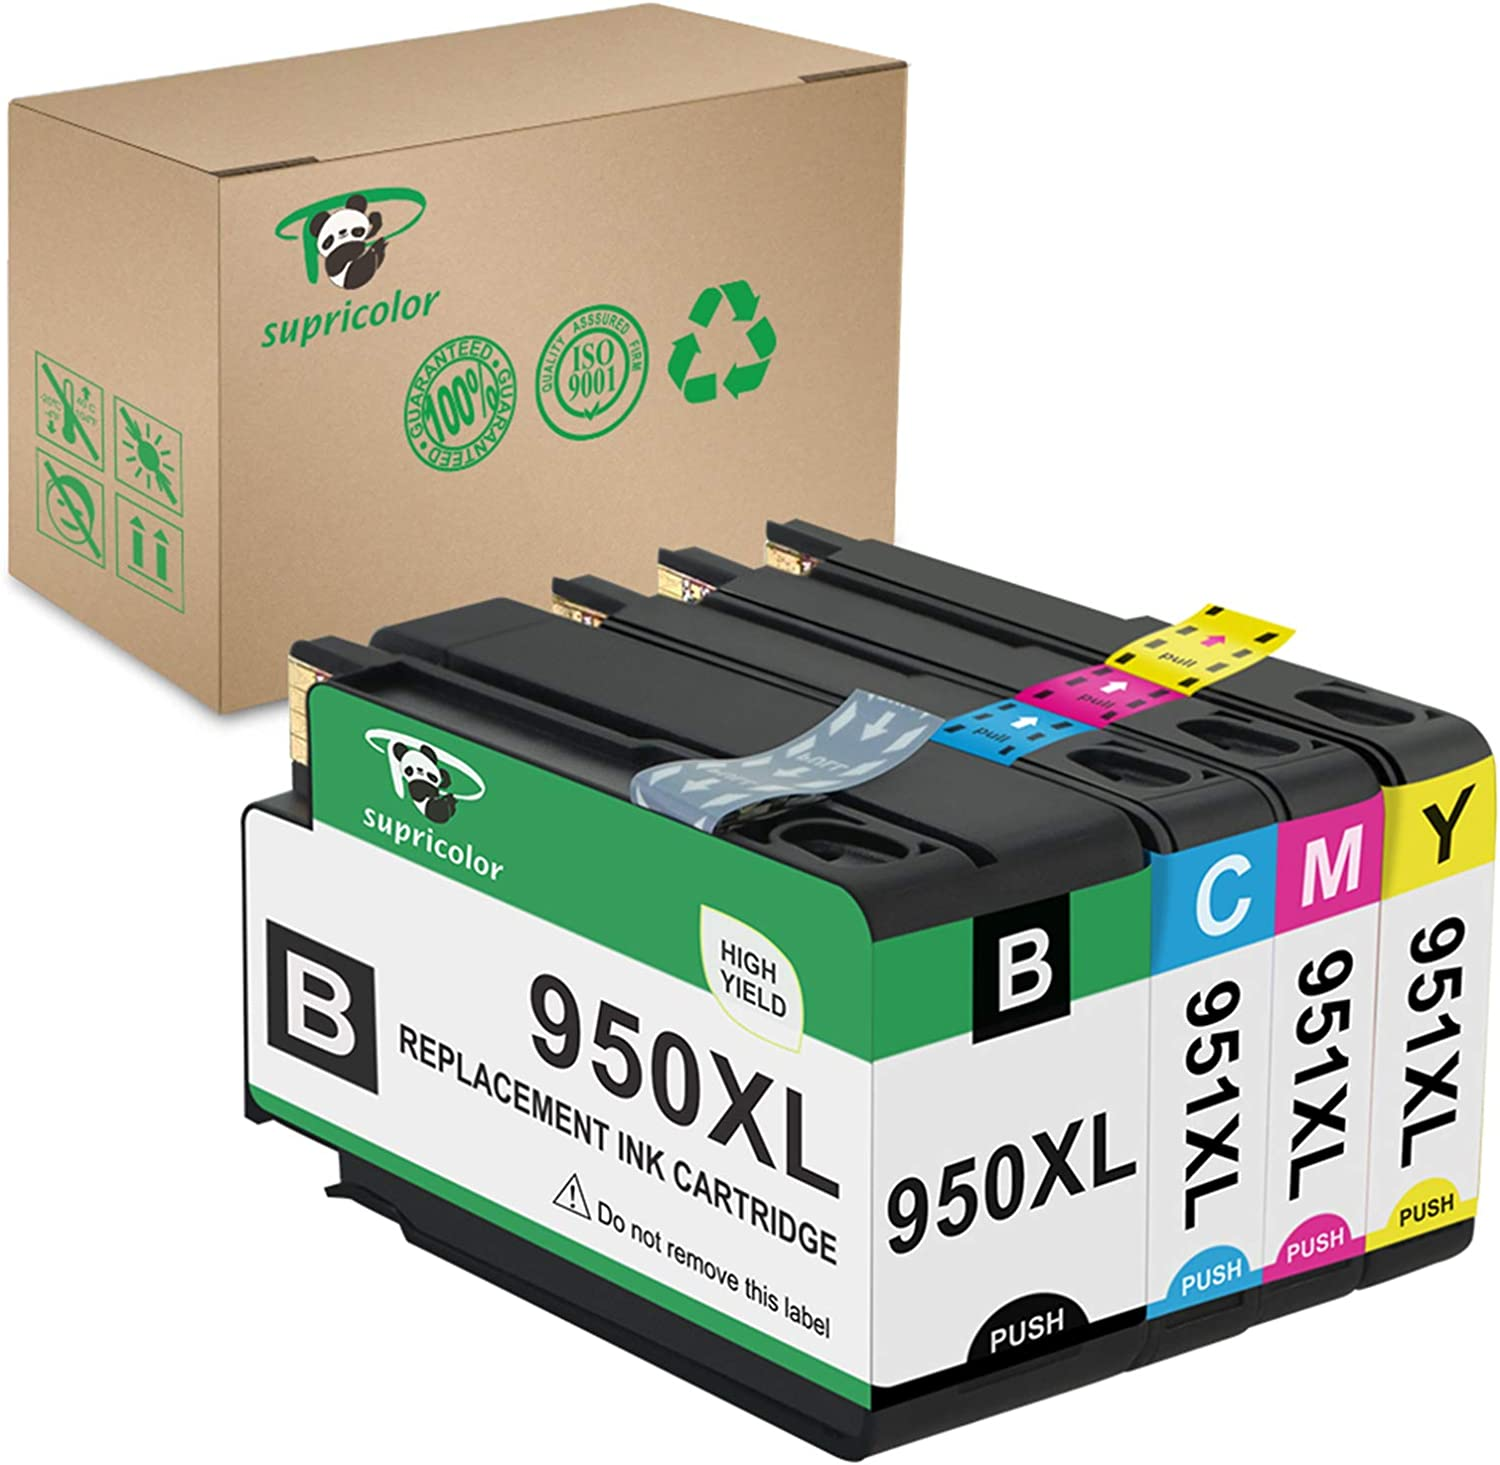 Supricolor 950XL 951XL Ink Cartridges High Yield, Replacement 950 951 Inks Works with OfficeJet Pro 8600 8610 8620 8630 8660 8640 8615 8625 276DW 251DW 271DW Printers 1 Set (BK/C/M/Y)